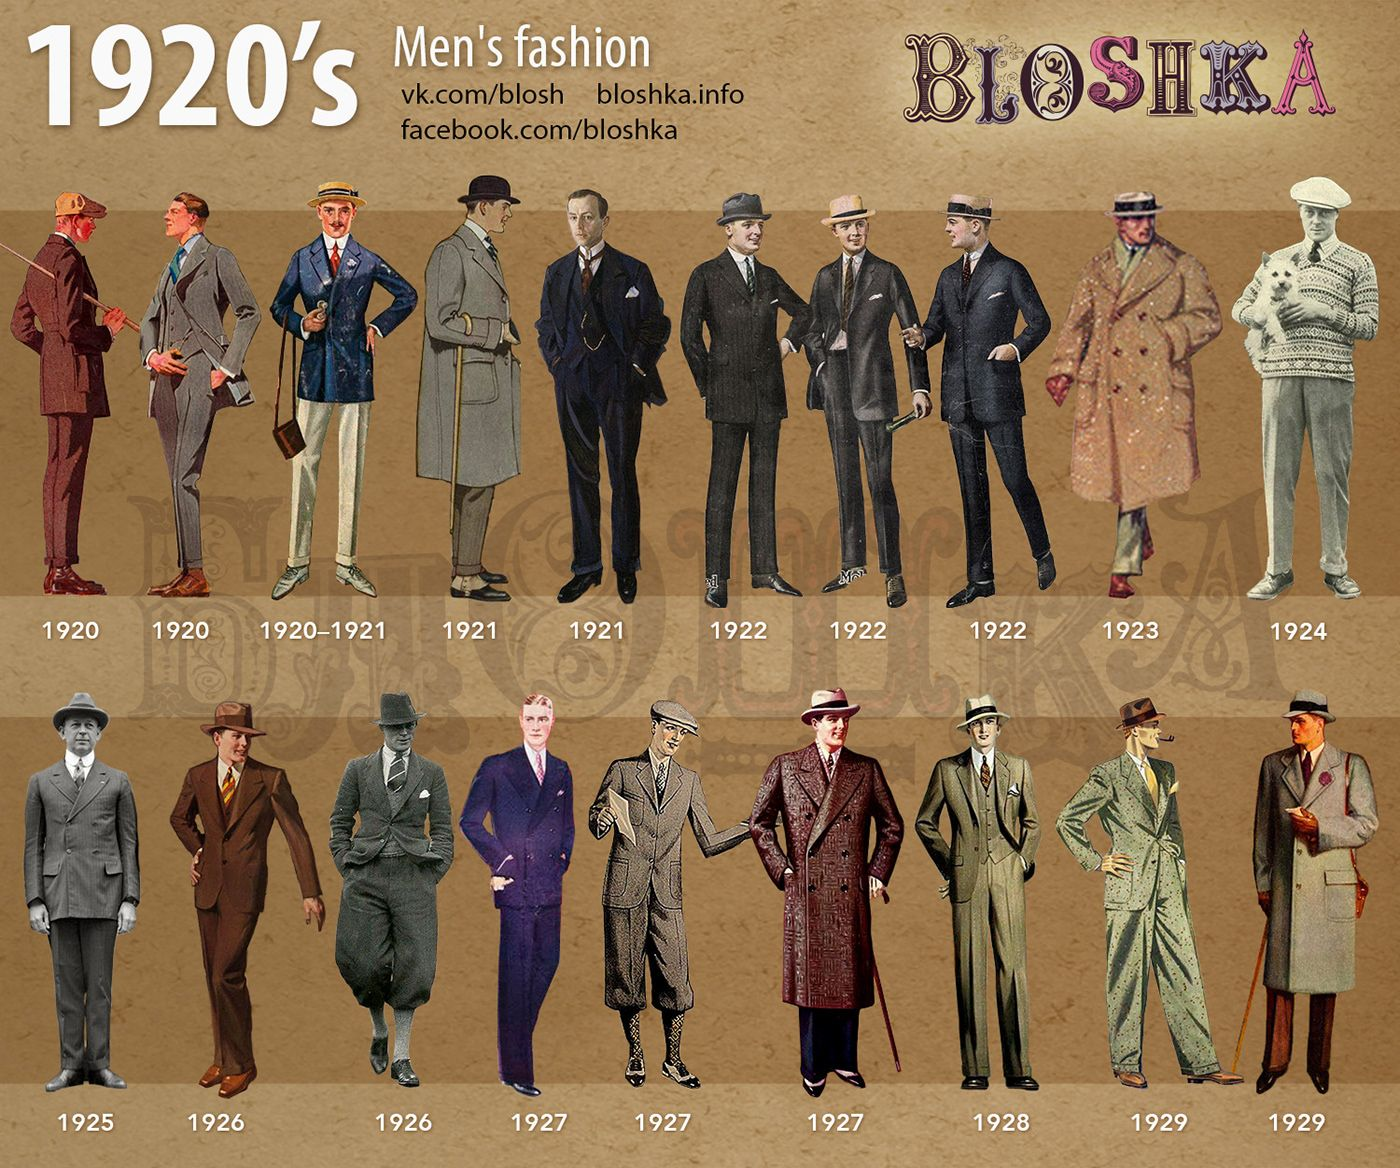 1920's of Fashion